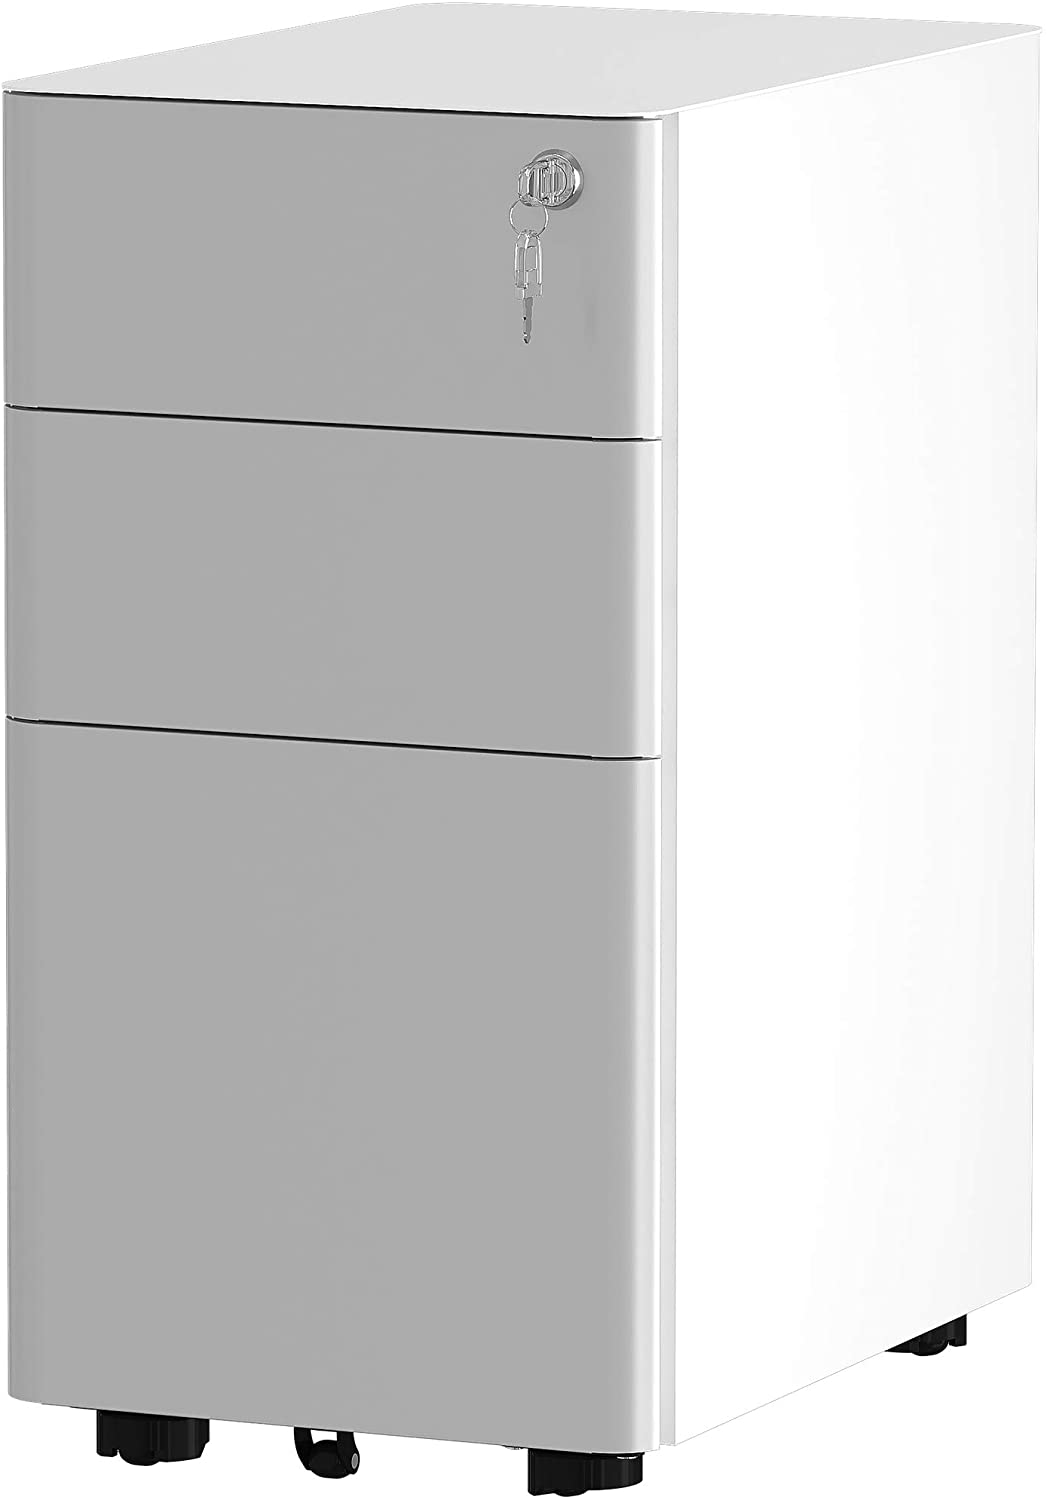 YITAHOME 3-Drawer Metal Filing Cabinet Office Drawers with Keys, Compact Slim Portable File Cabinet, Pre-Built Office Storage Cabinet for A4/Letter/Legal (Gray and White)